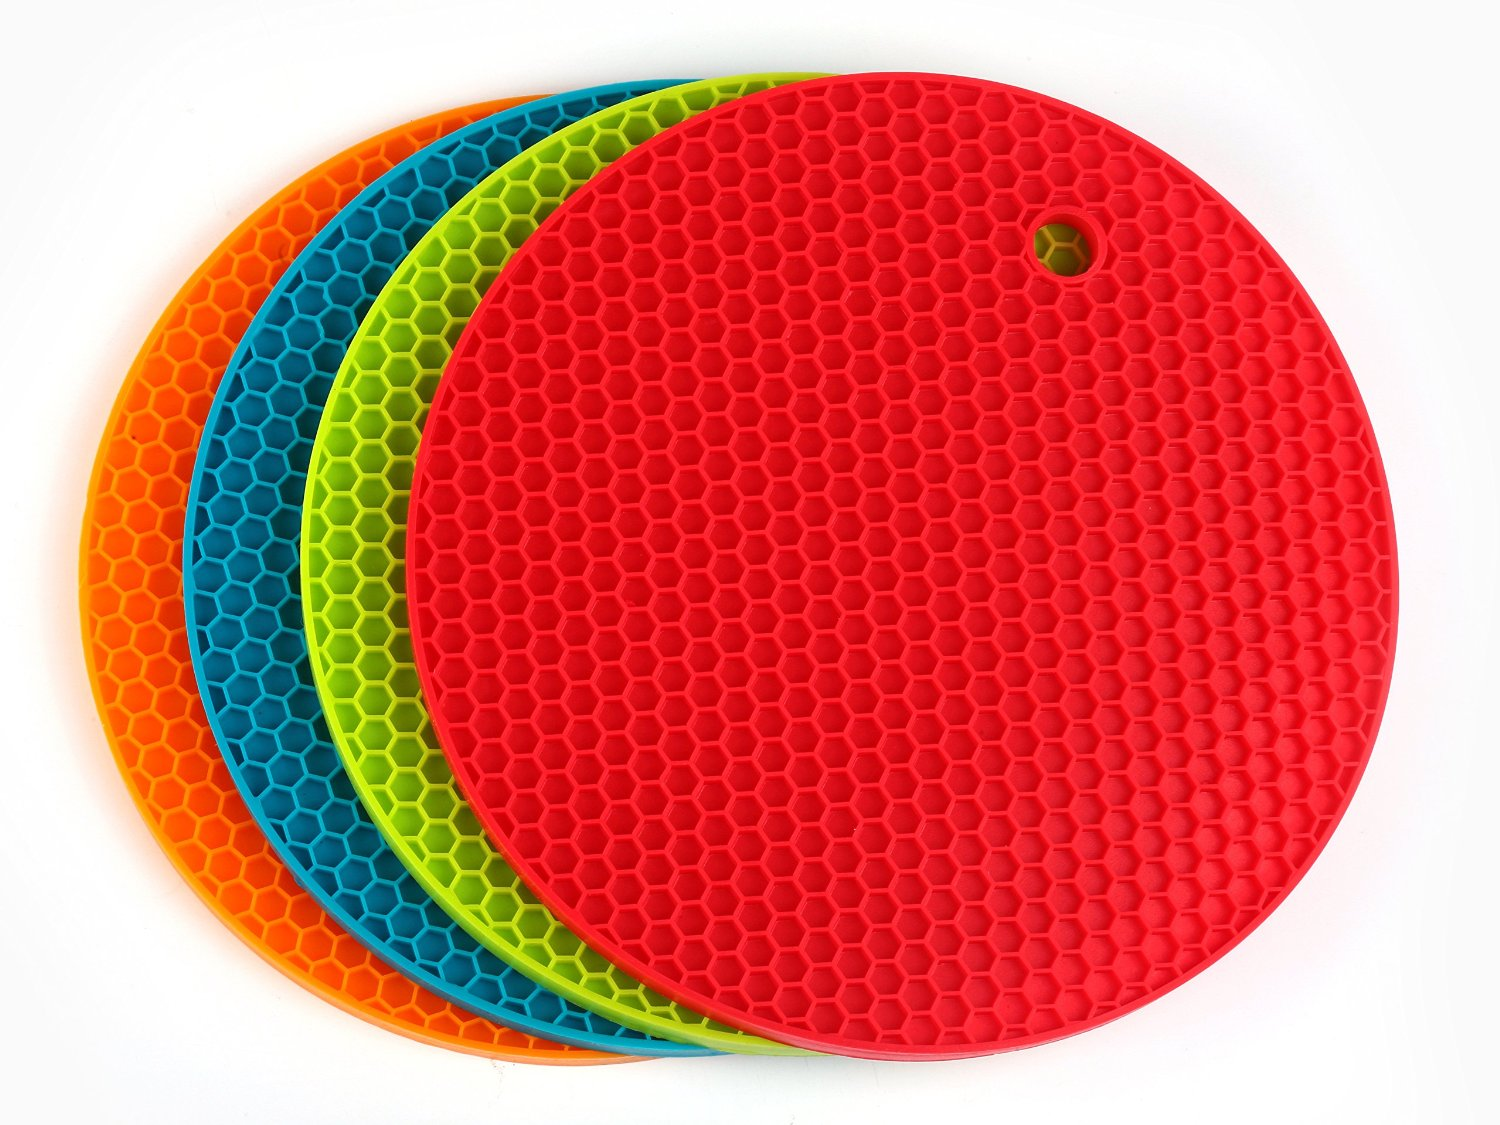 Angela Star 4piece Silicone Durable Flexible Potholder Nonslip Heat  Resistant Placemat Tablemat (18wx18l)